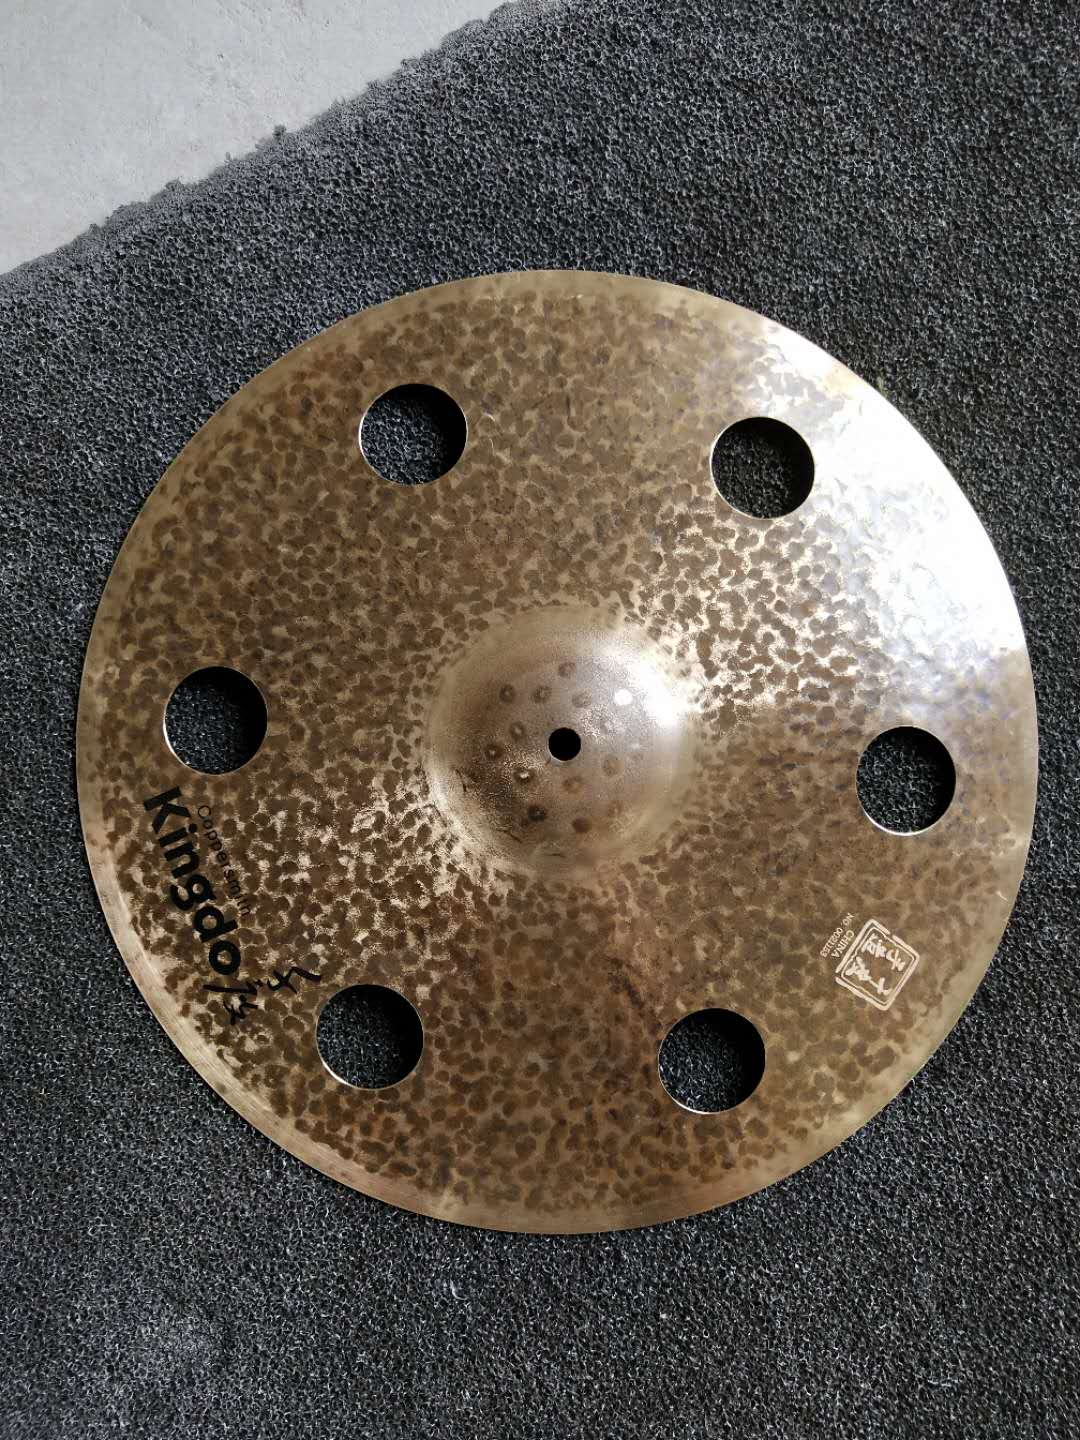 Good Quality O-ZONE Crash Cymbals